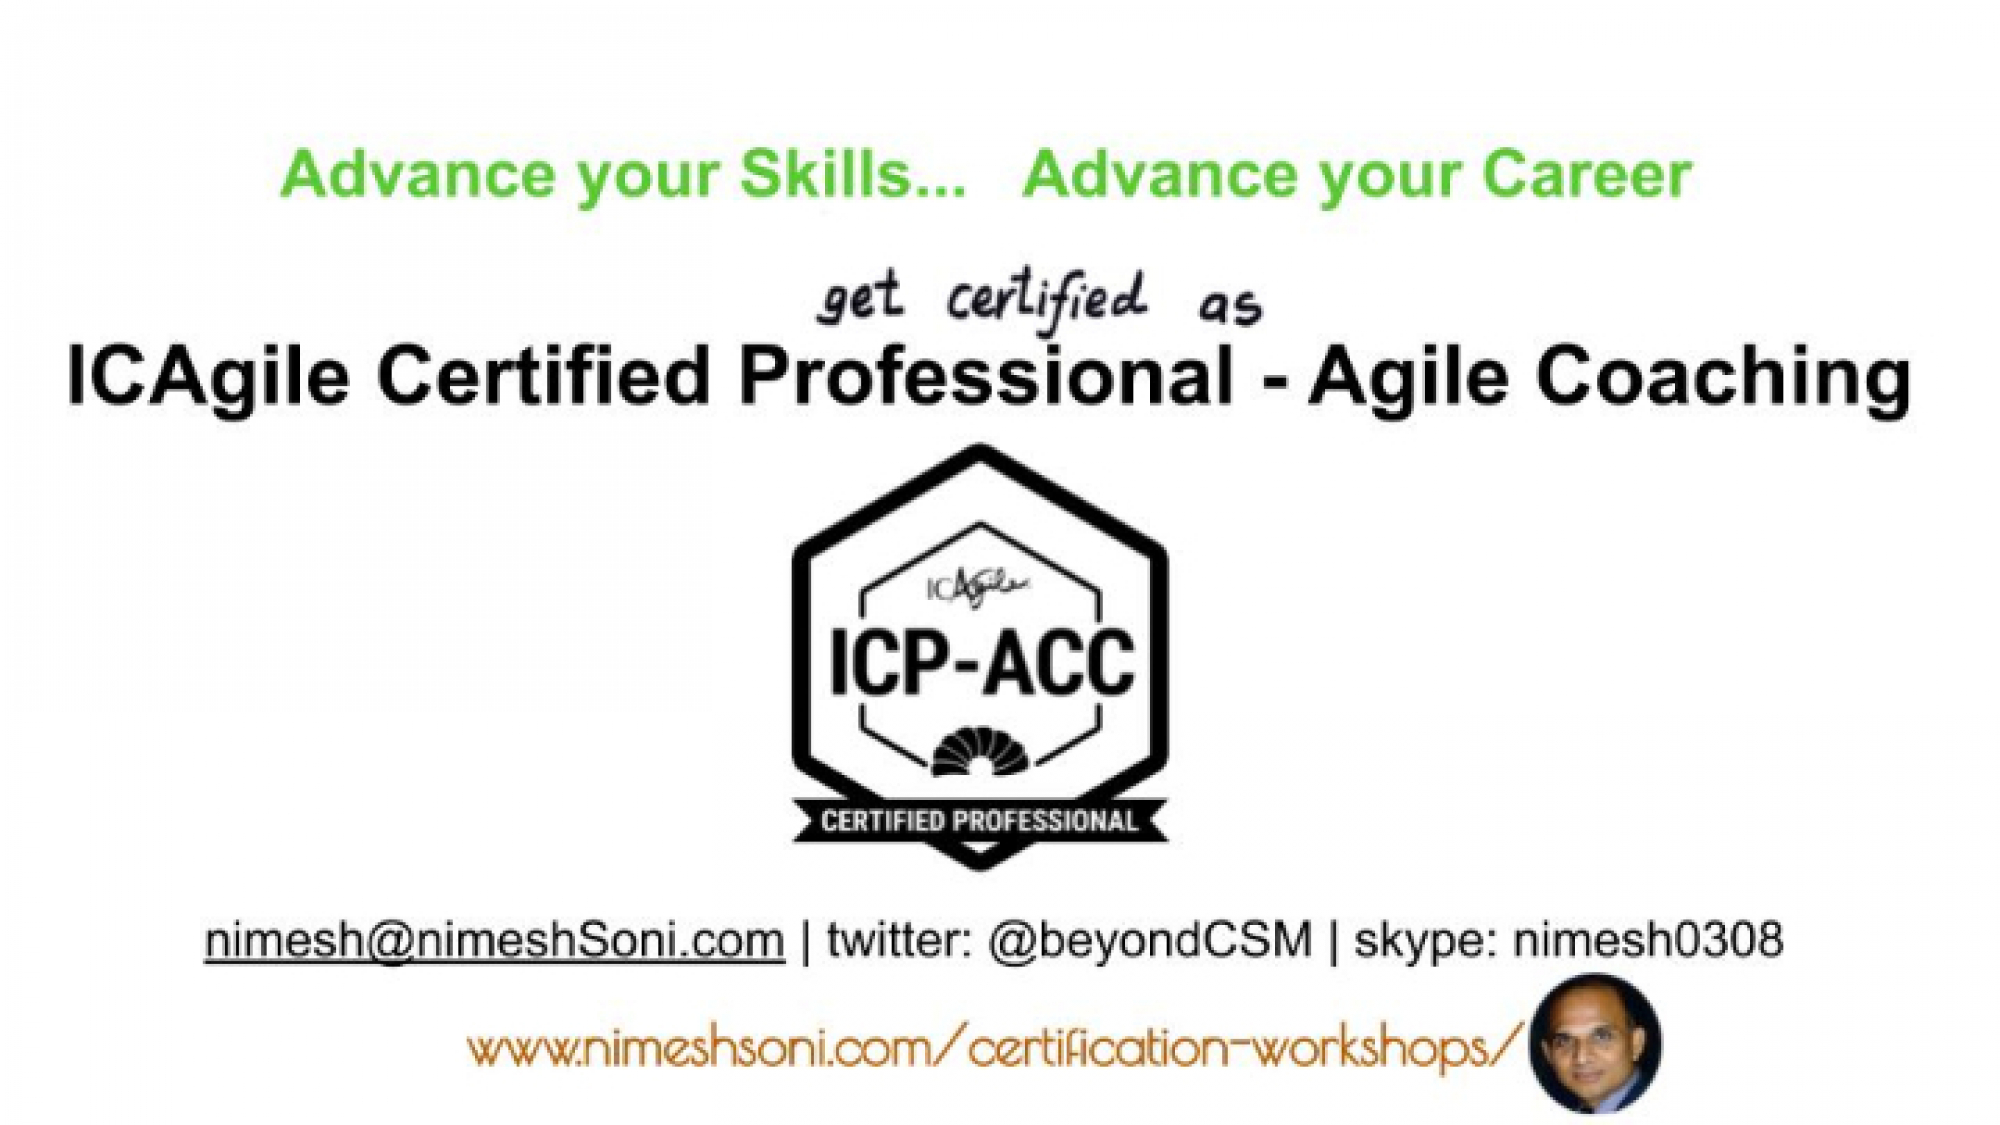 ICAgile Coaching Certification (ICP-ACC) Workshop - Brooklyn NY